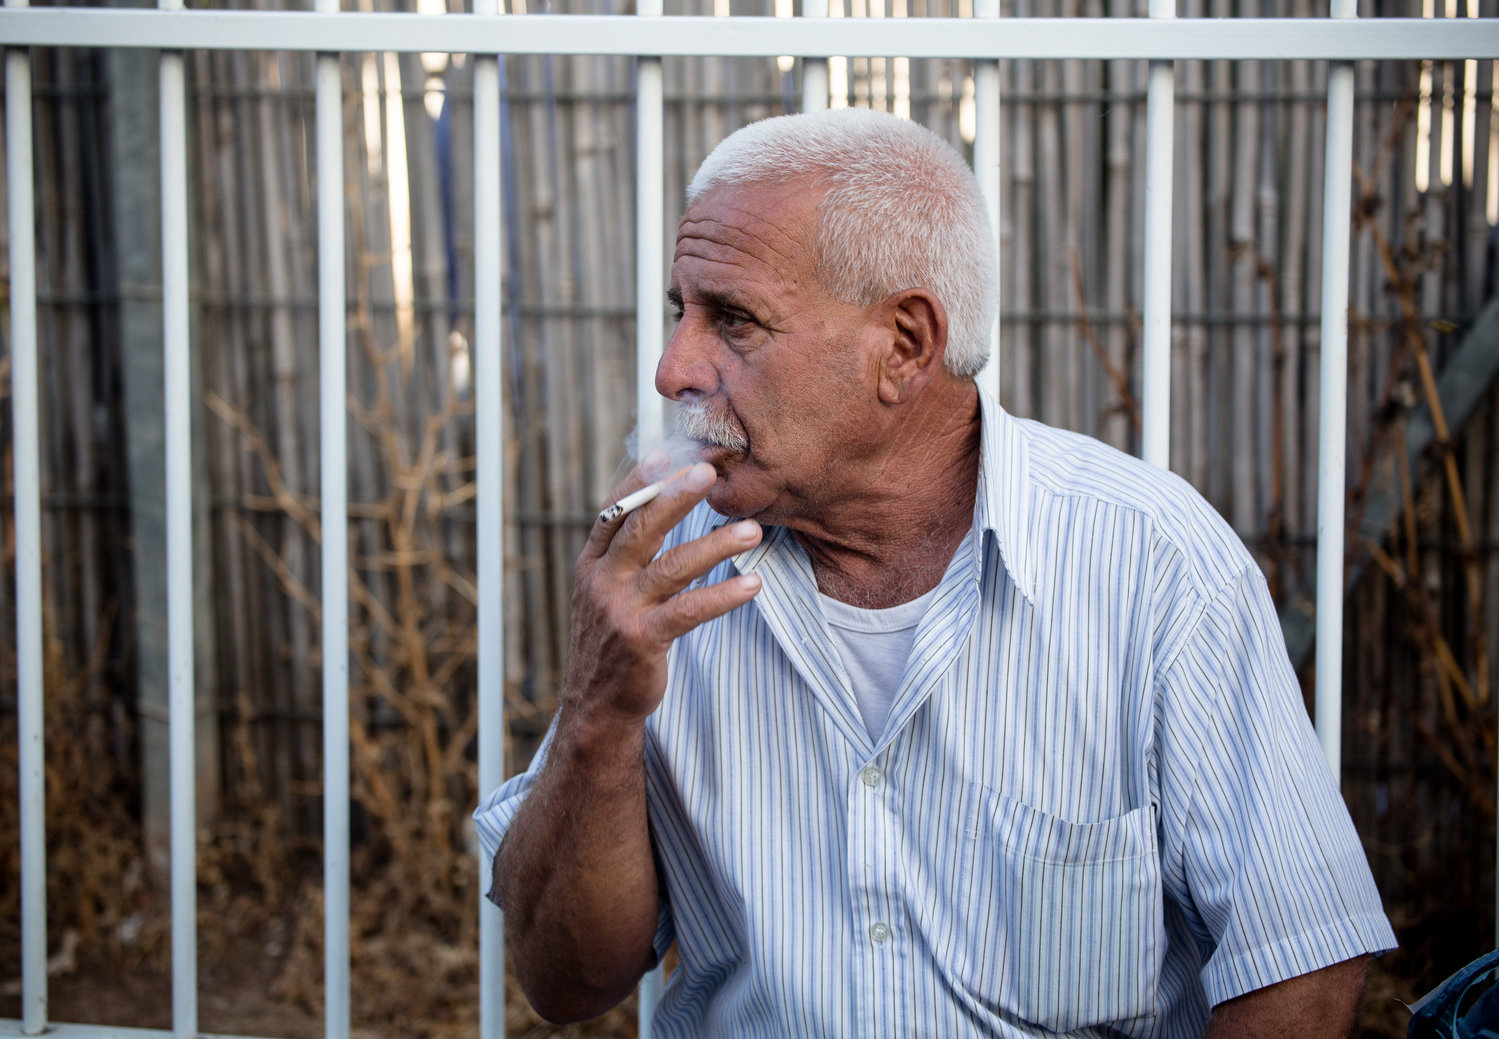 A Palestinian man smokes a cigarette at the Checkpoint 300 border crossing into Israel.